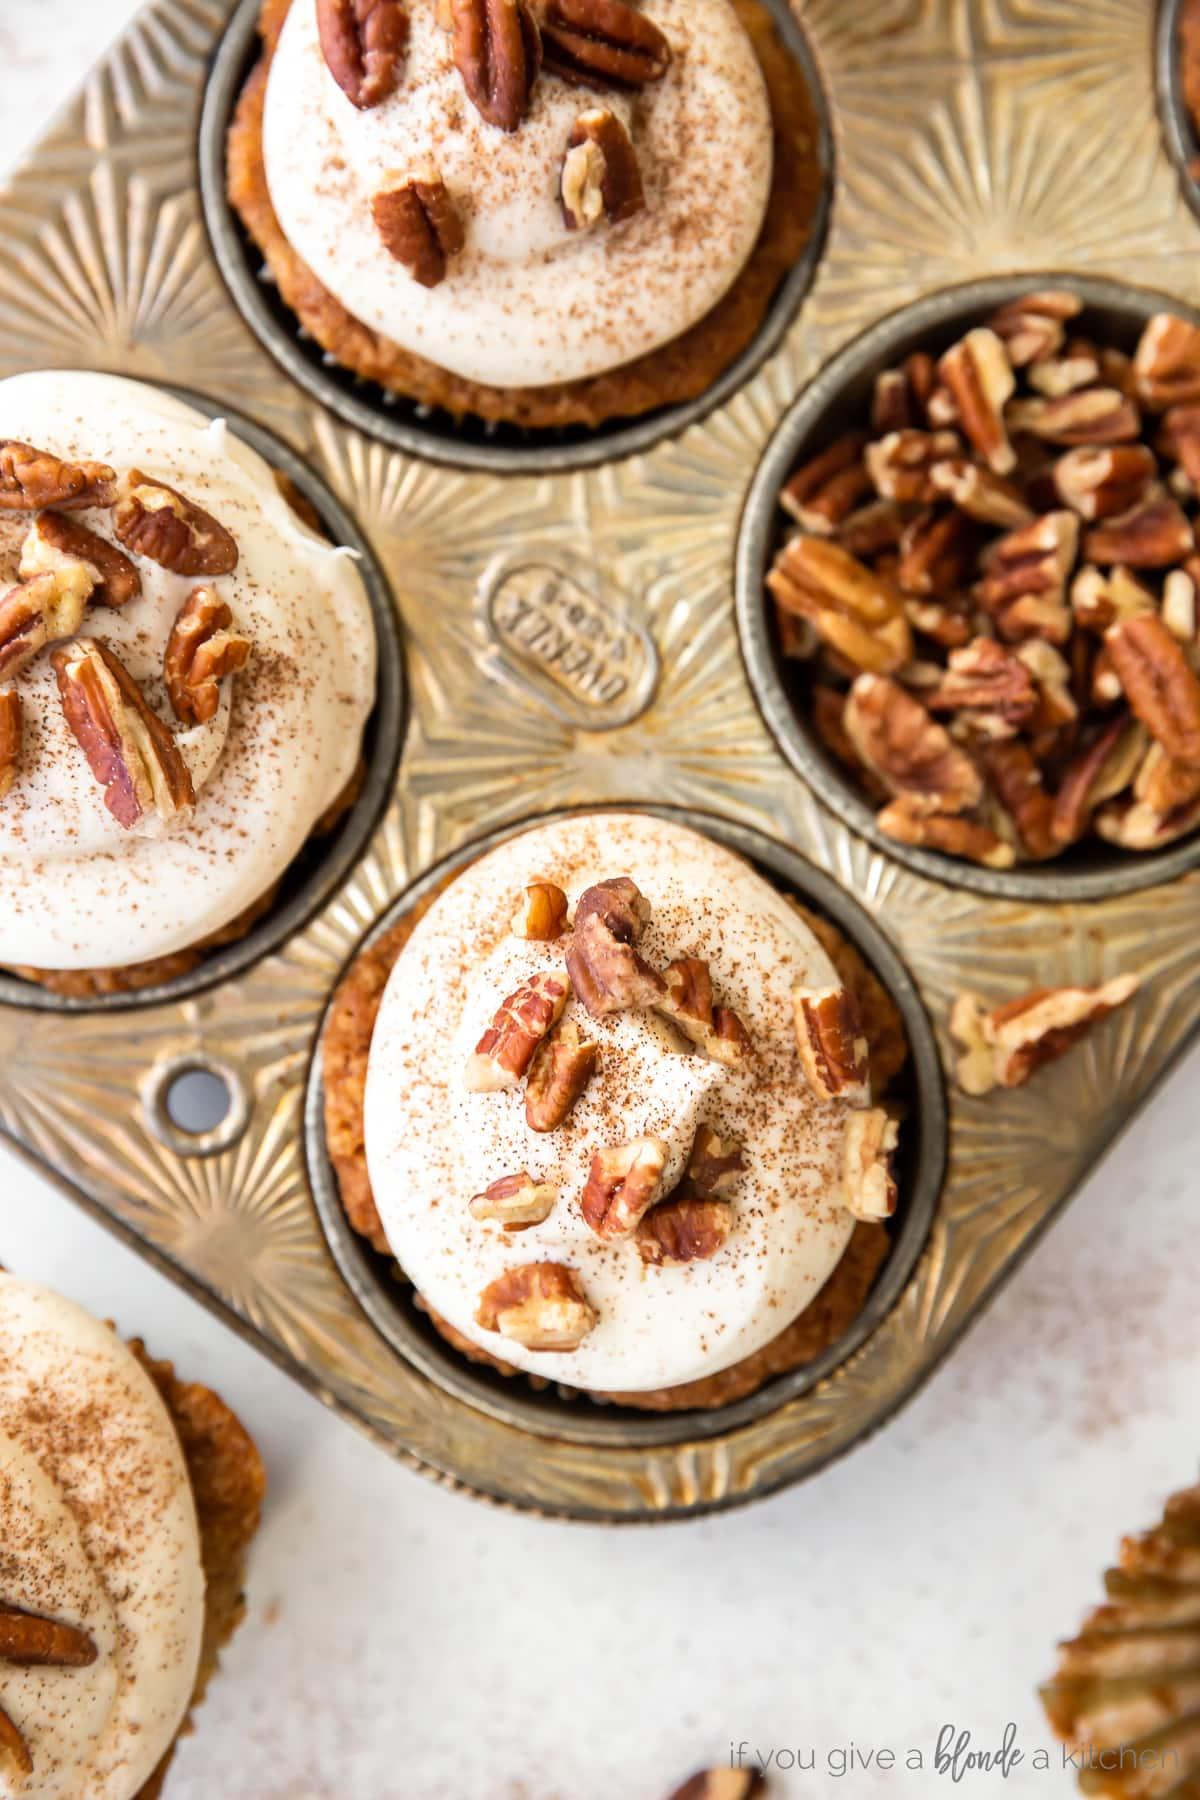 antique muffin tin with hummingbird cupcakes topped with cream cheese frosting and pecans